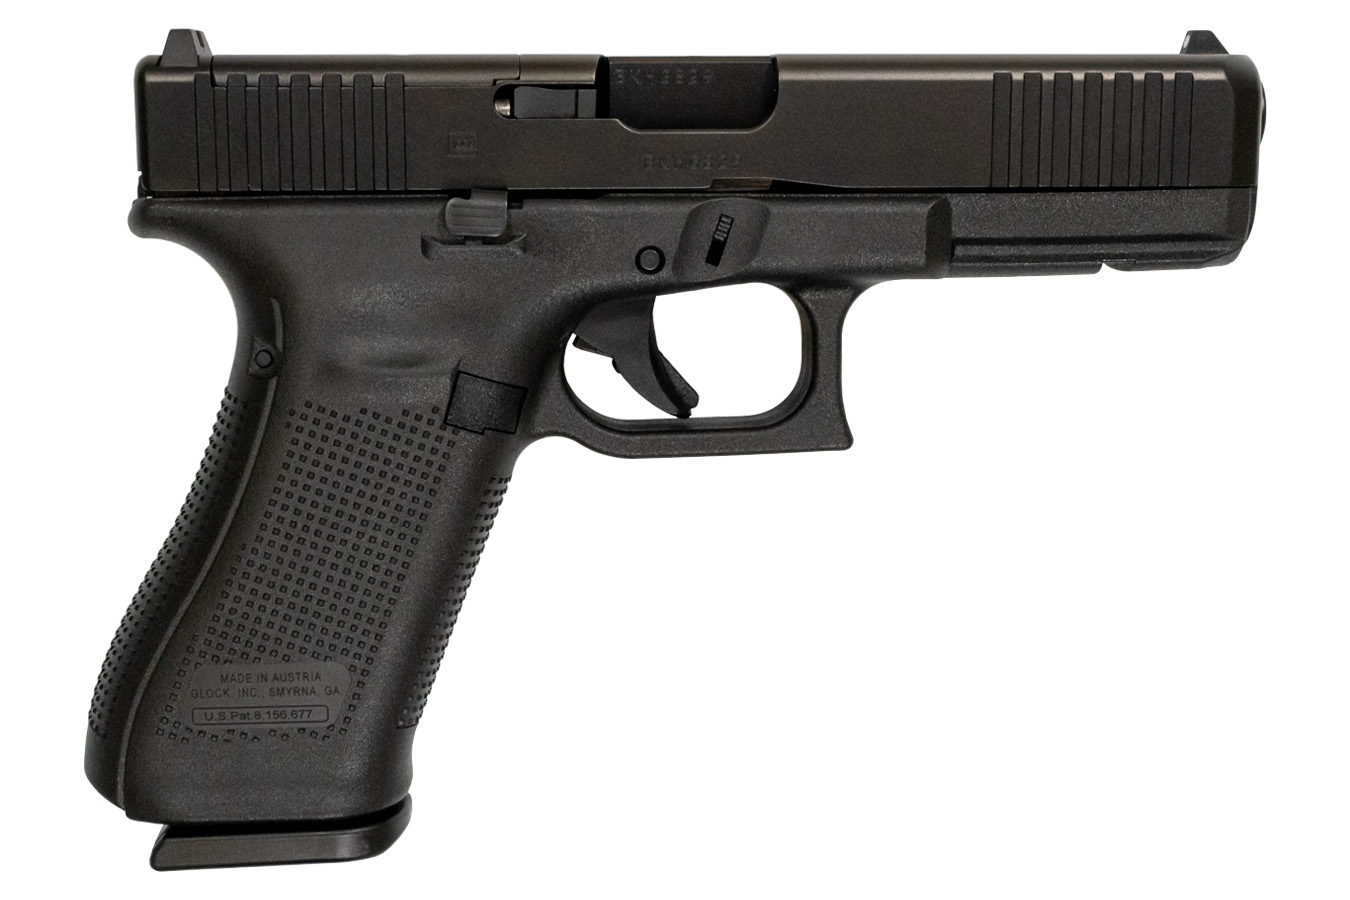 Glock 17 Gen5 9mm Mos Full Size Pistol With Front Serrations Vance